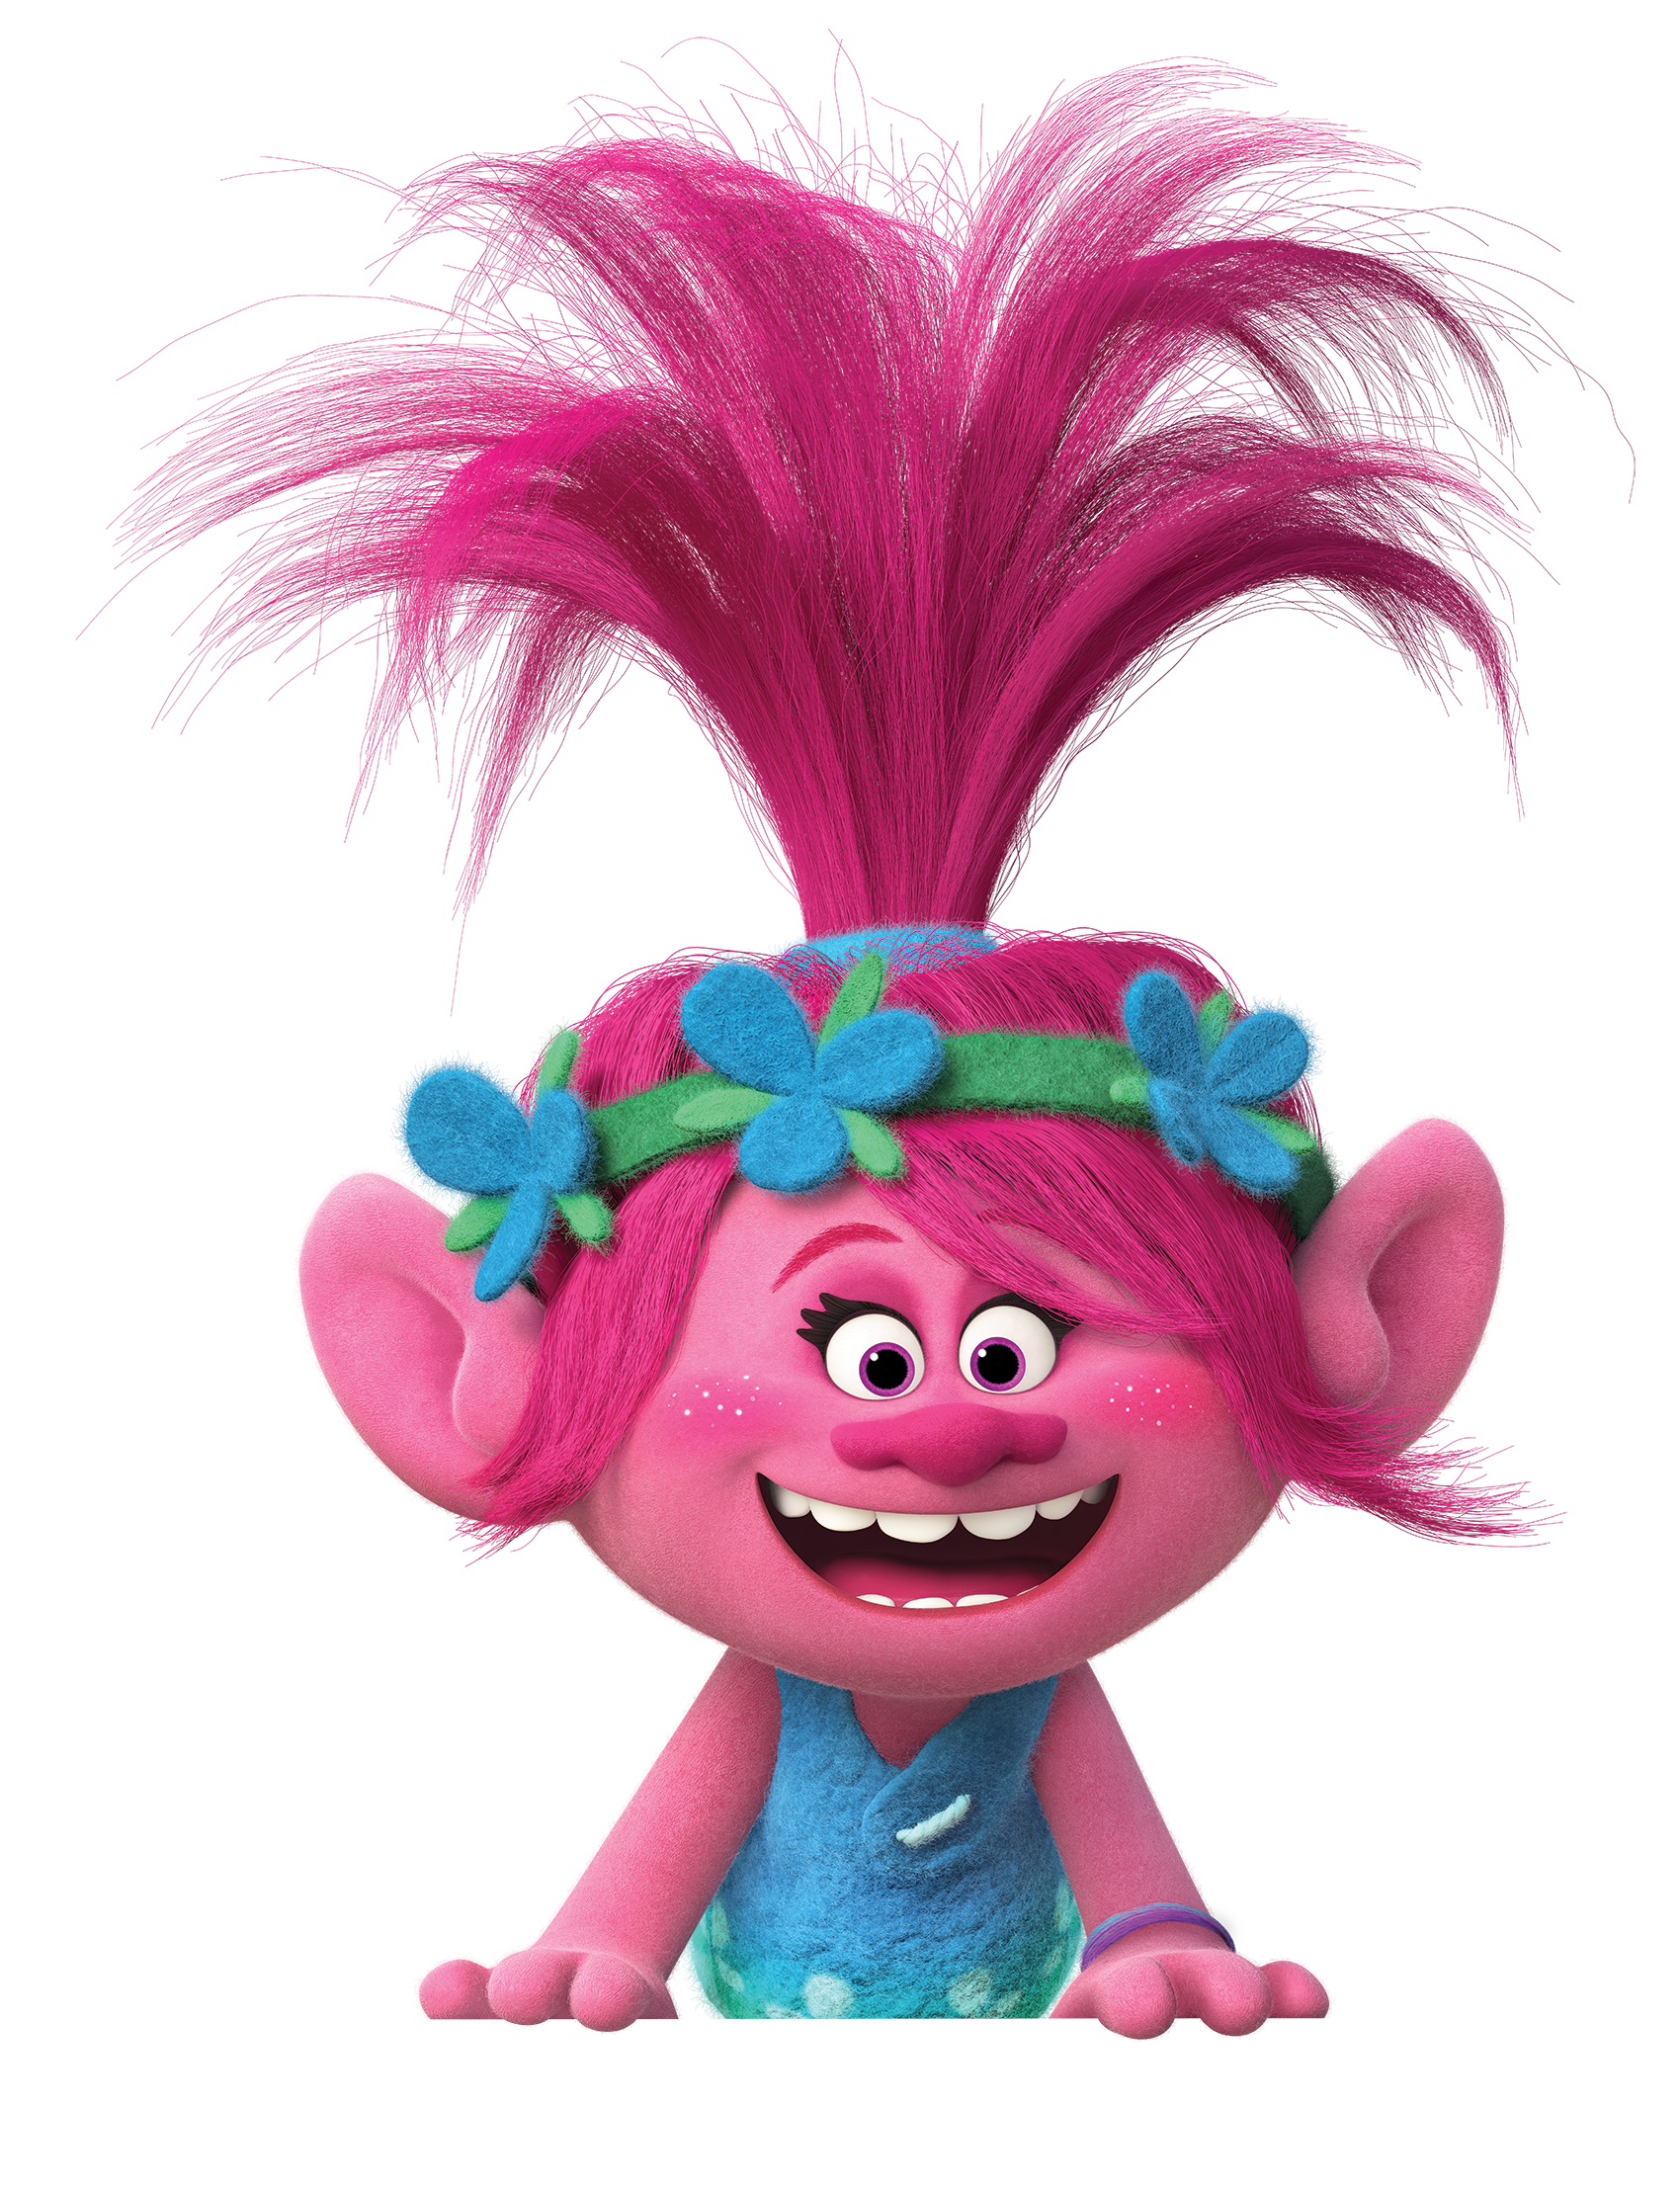 Characters of dreamworks d dreamworks animation photo pictures to pin - Www Fhetoolkits Com Trolls Catalog Attach Downloads Celebrate Trolls Trolls